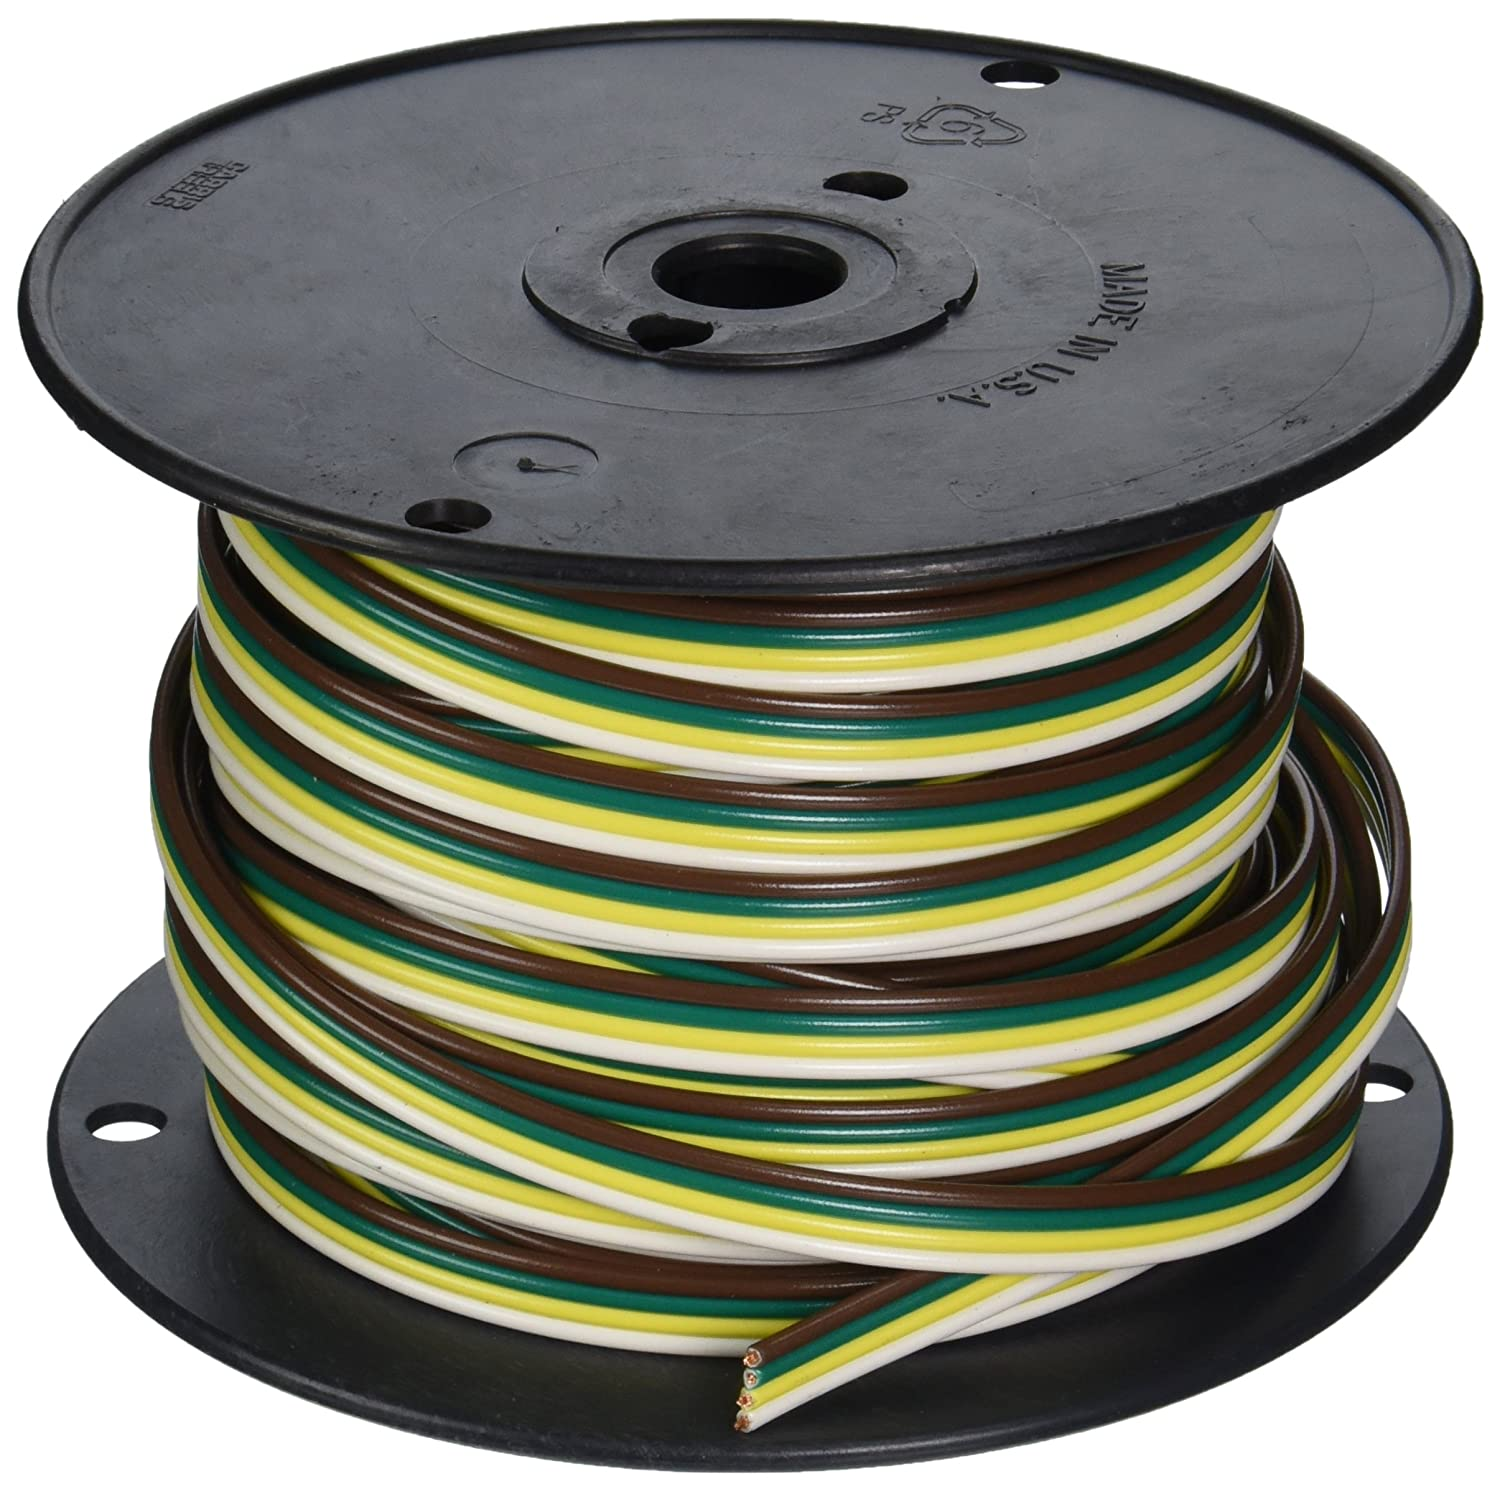 91BW3IQpB6L._SL1500_ coleman cable 51564 03 100 feet spool of trailer wire, 16 gauge 4 Plug in Trailer Wiring Kits at bakdesigns.co